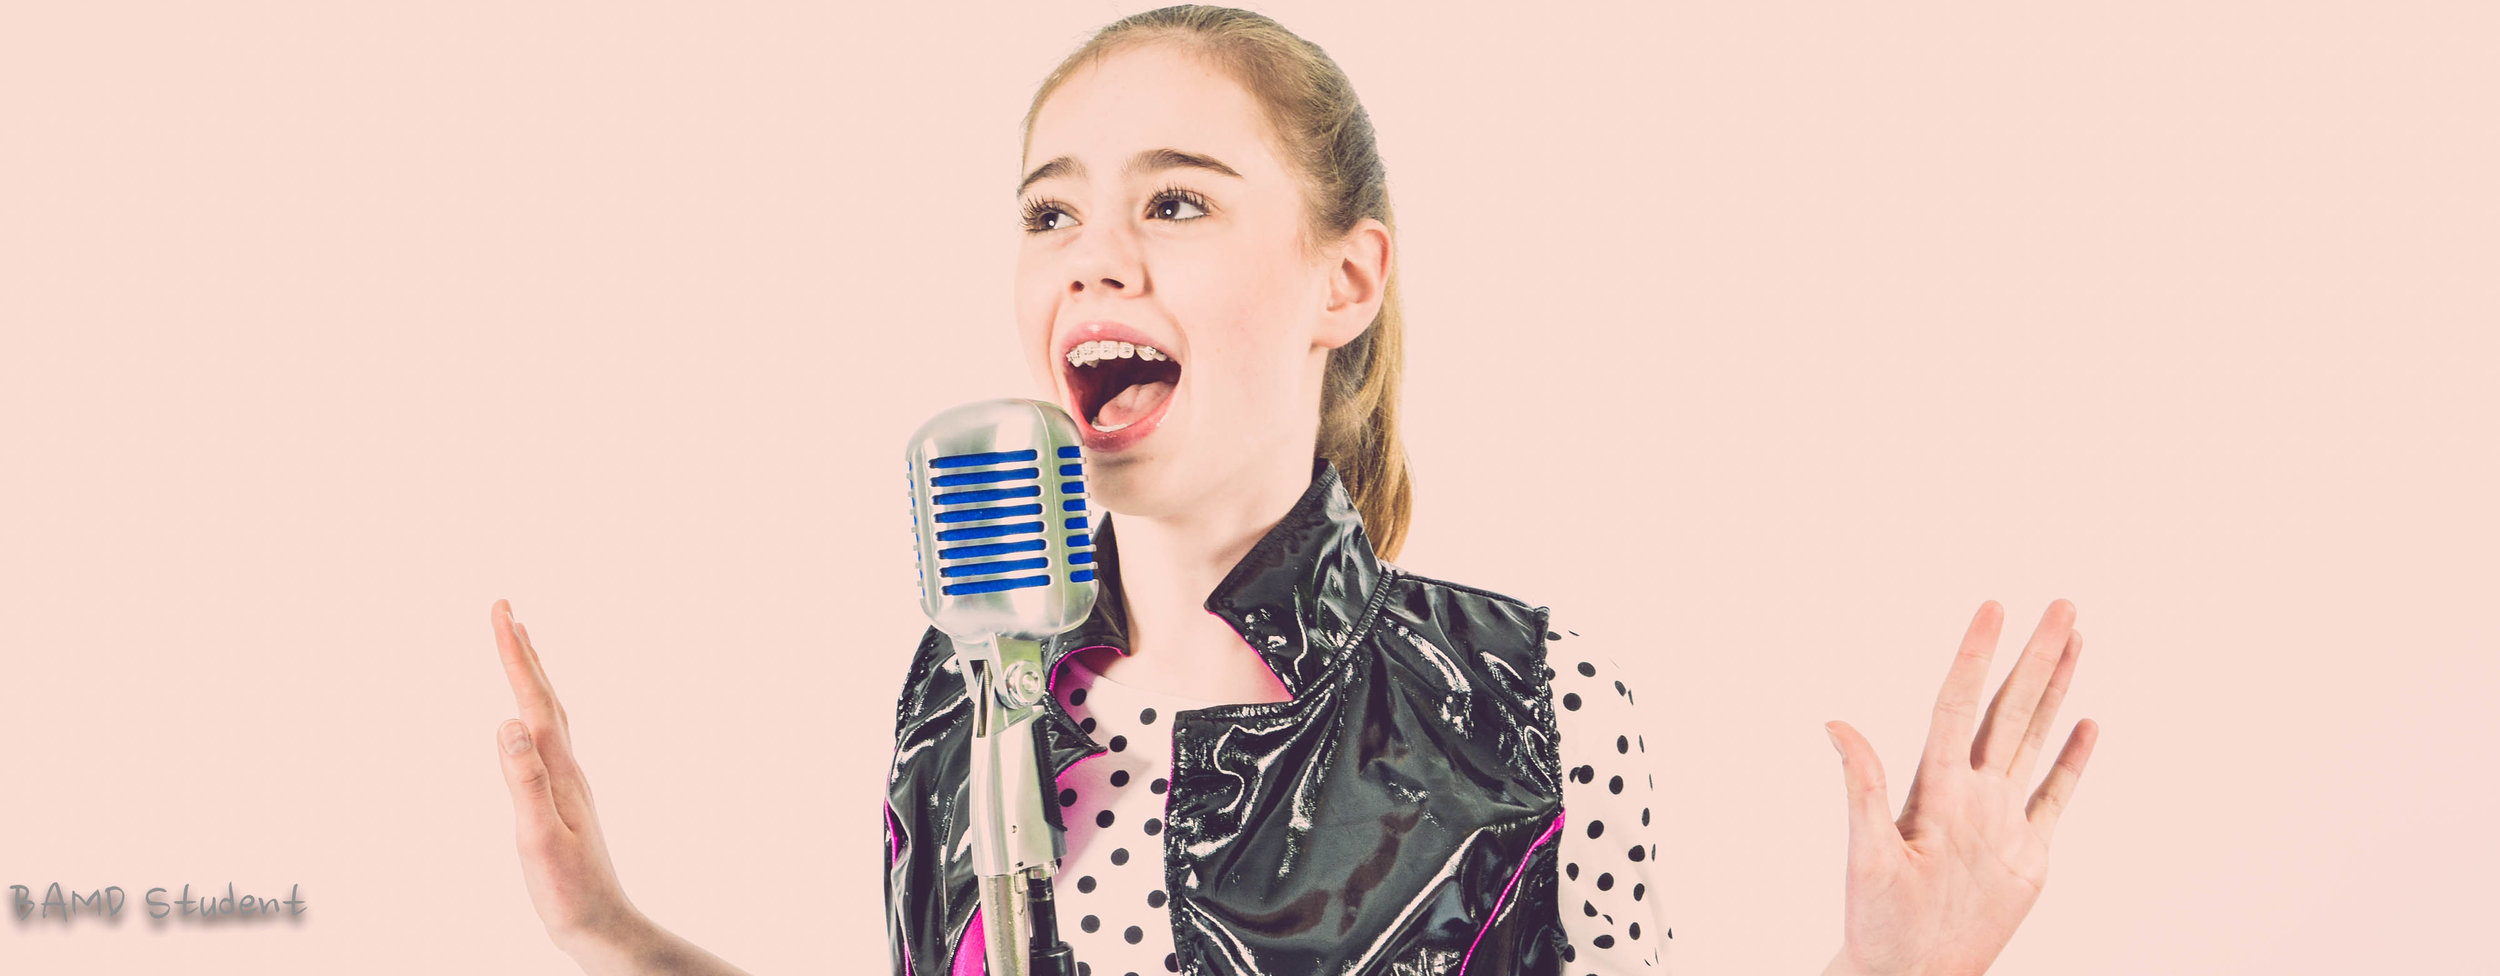 voice lessons for kids and adults in seattle and shoreline.jpg